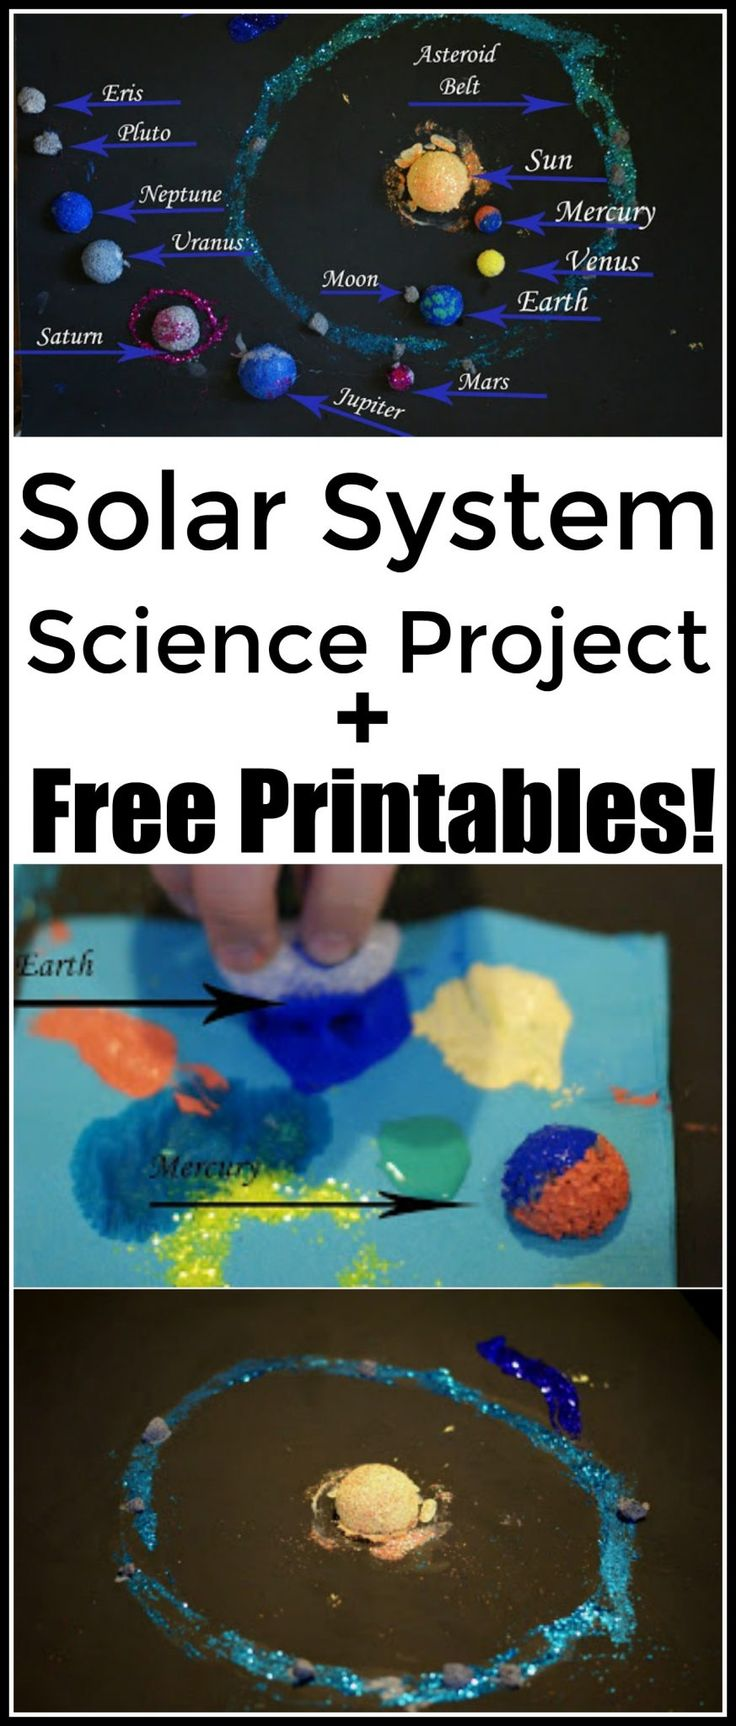 Cool sensory planets project for your solar system lessons! A fun idea before the solar eclipse in August!